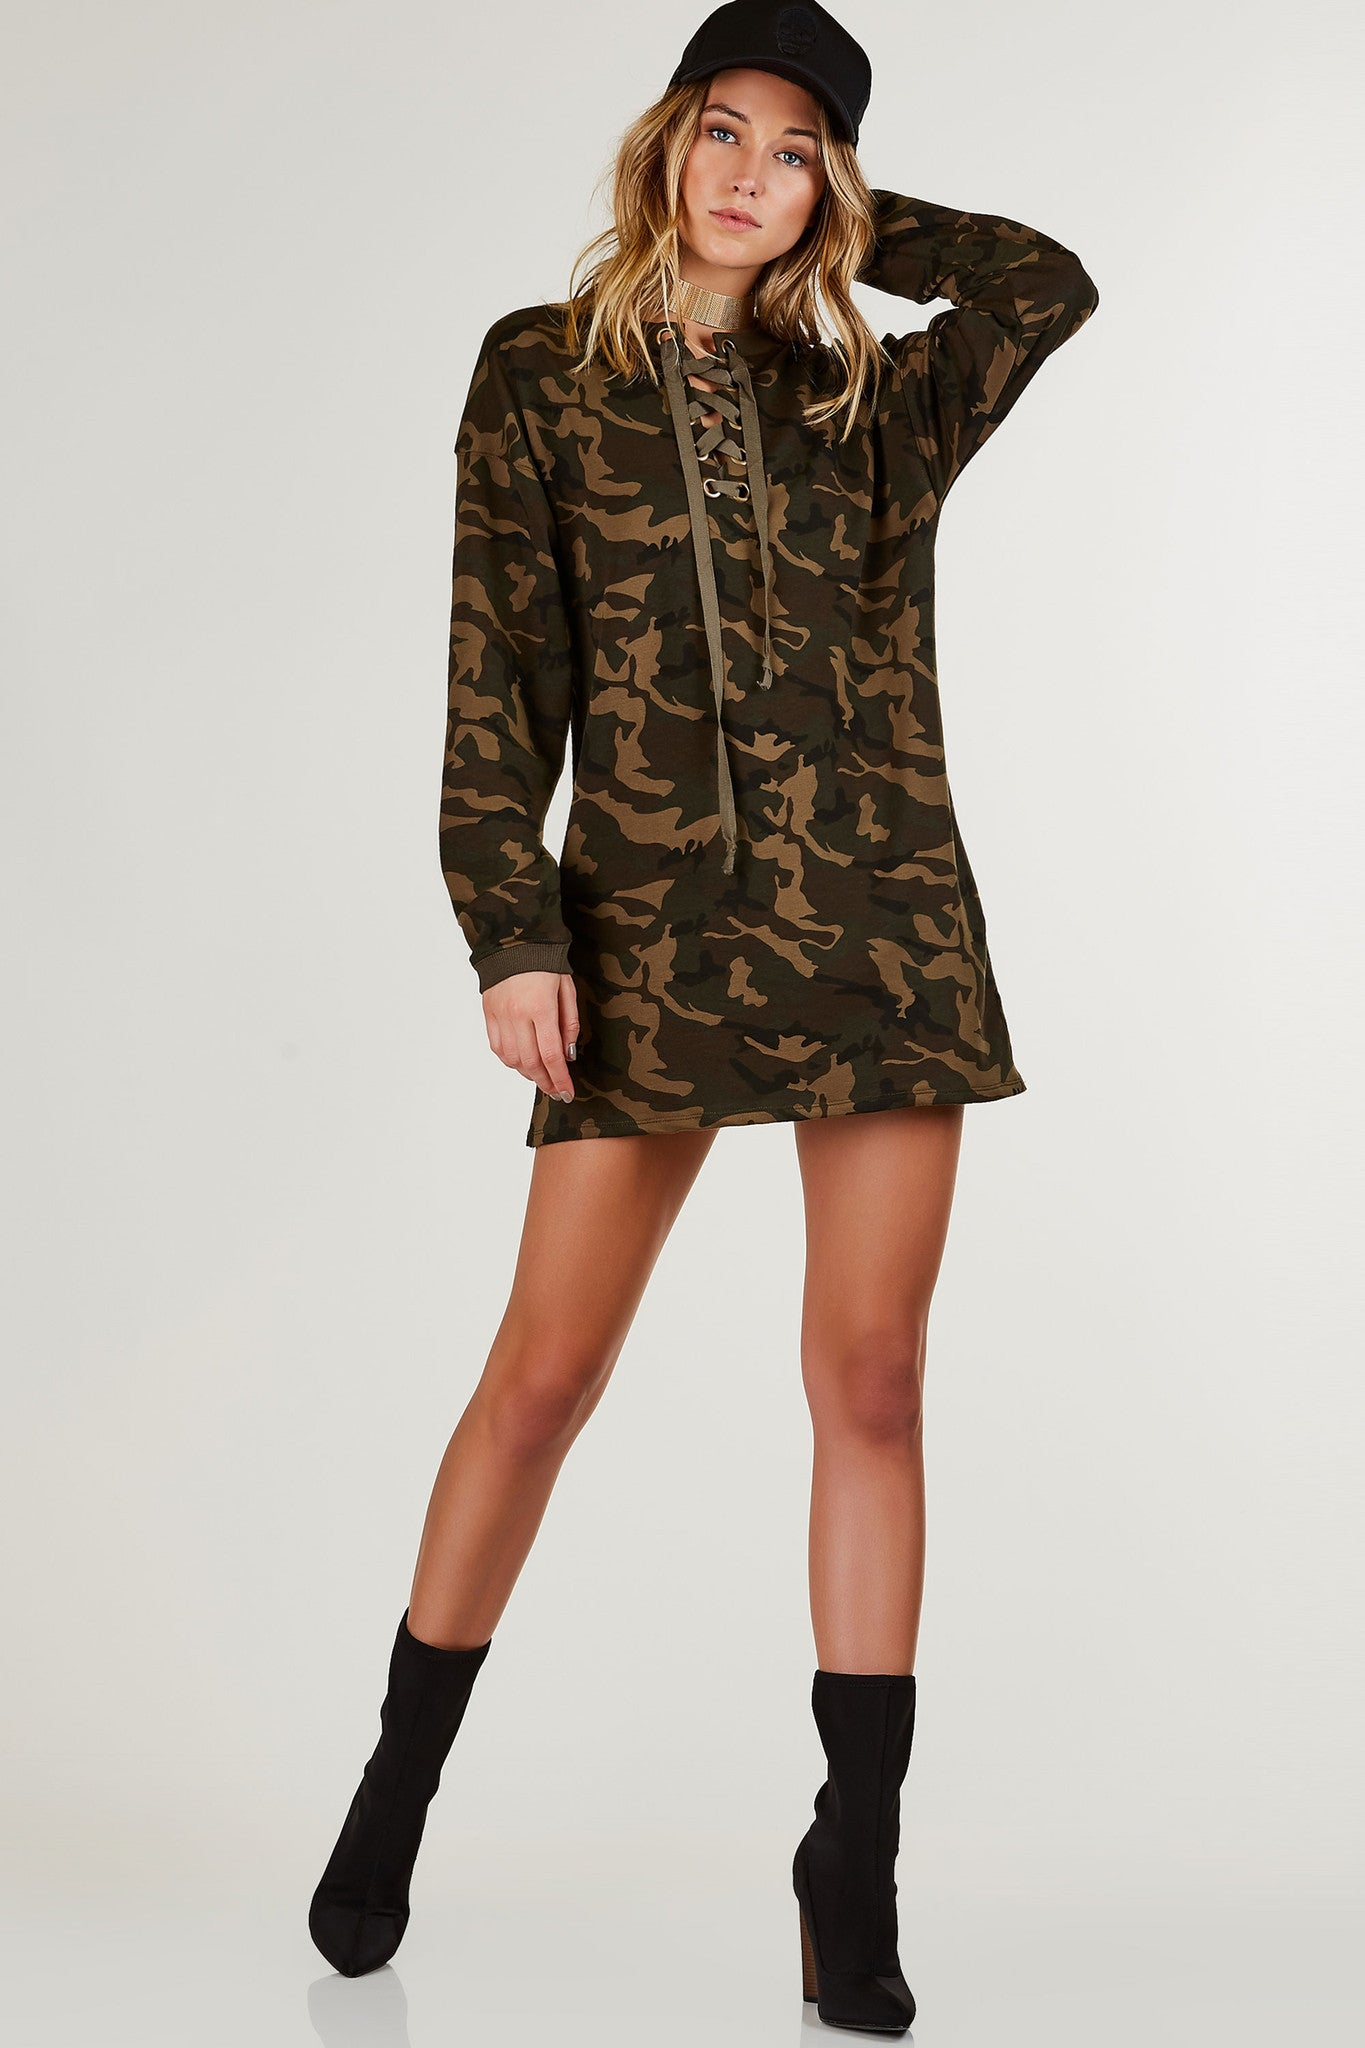 Long sleeve printed tunic dress with ribbed neckline. Eyelet detailing with lace up design and oversized fit.